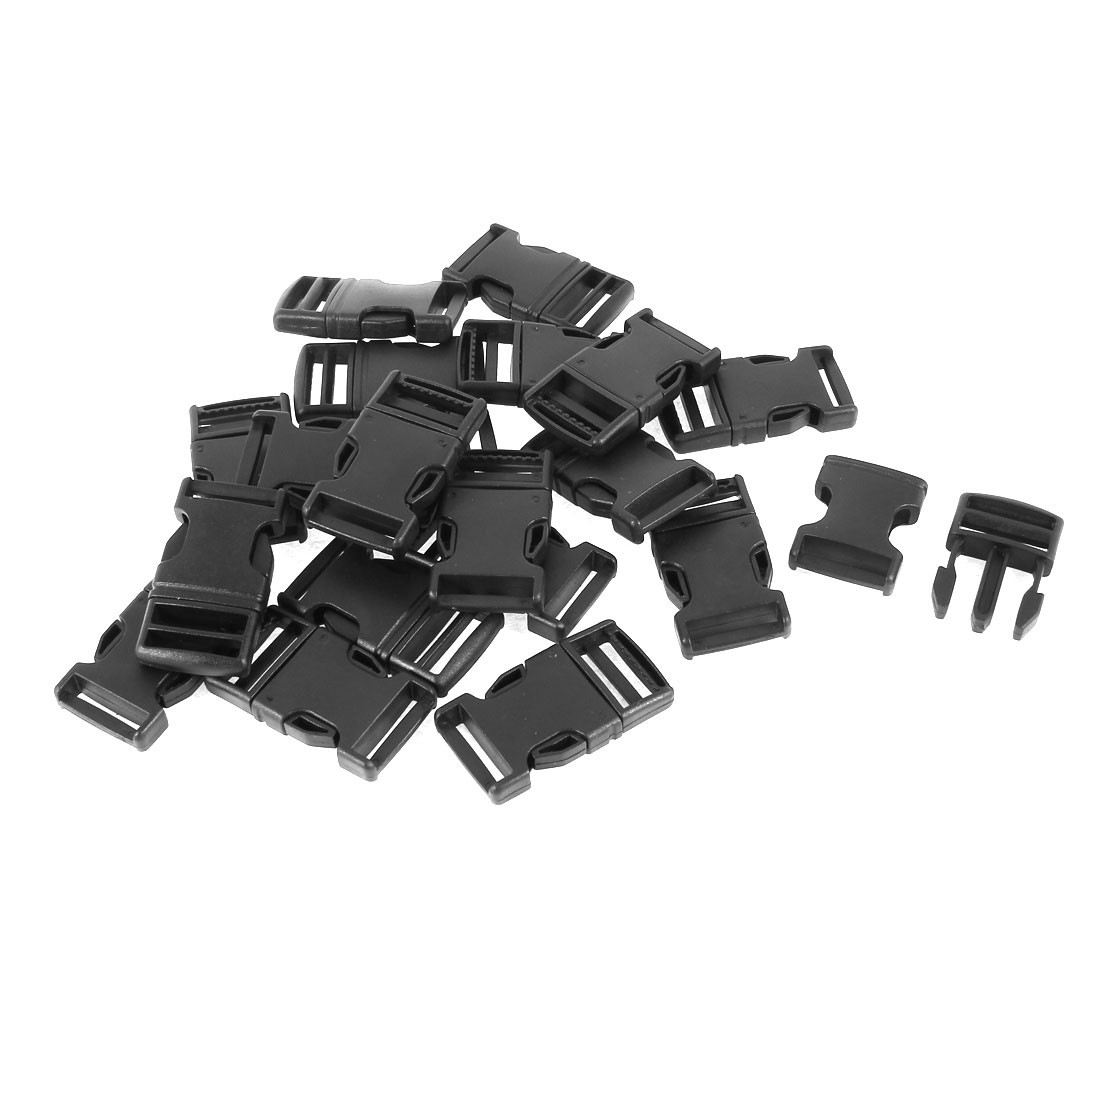 20 Pcs Black Plastic Packbag Spare Part Side Quick Release Buckles